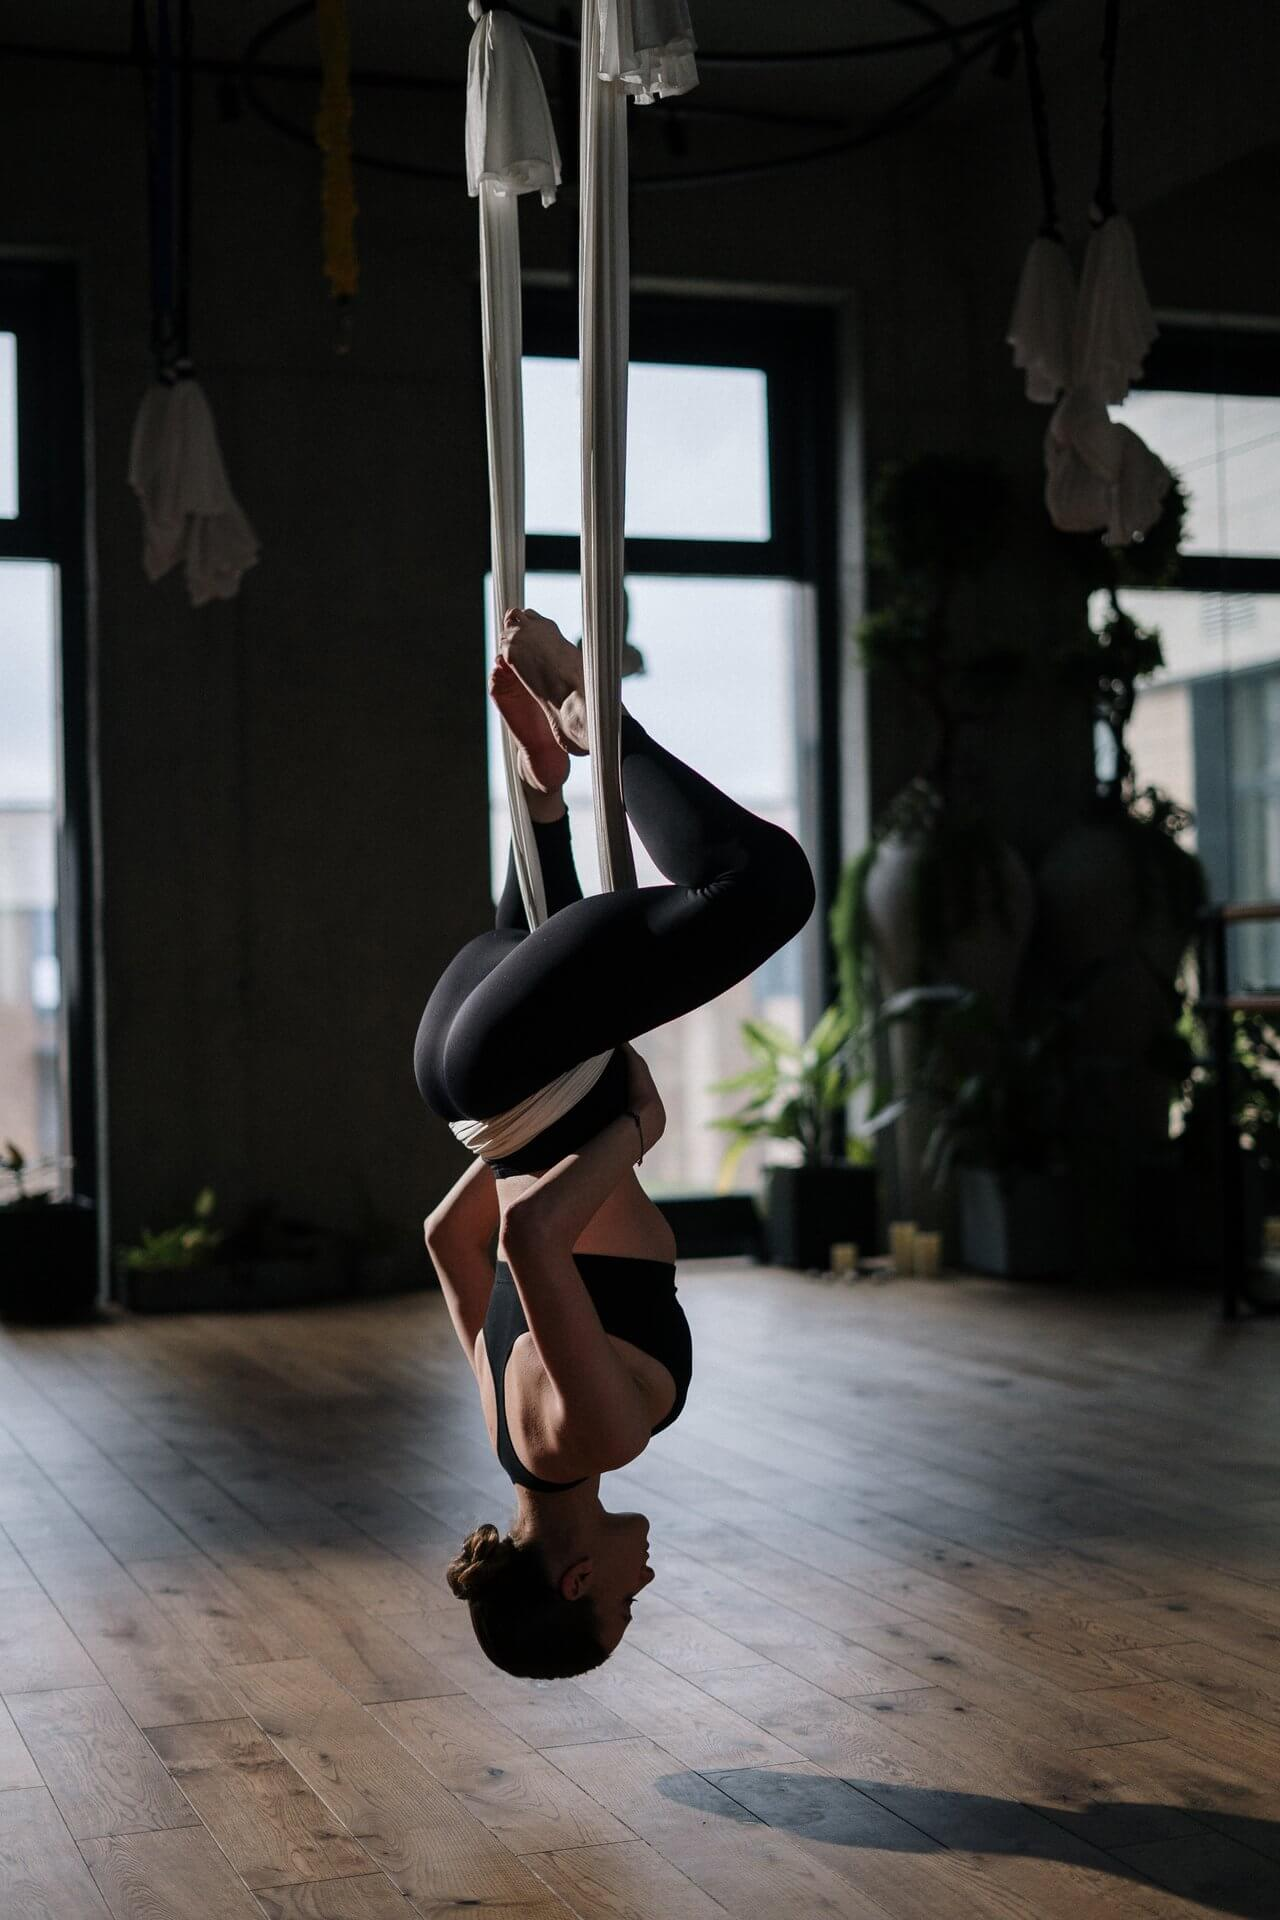 How To Hang Yoga Trapeze?